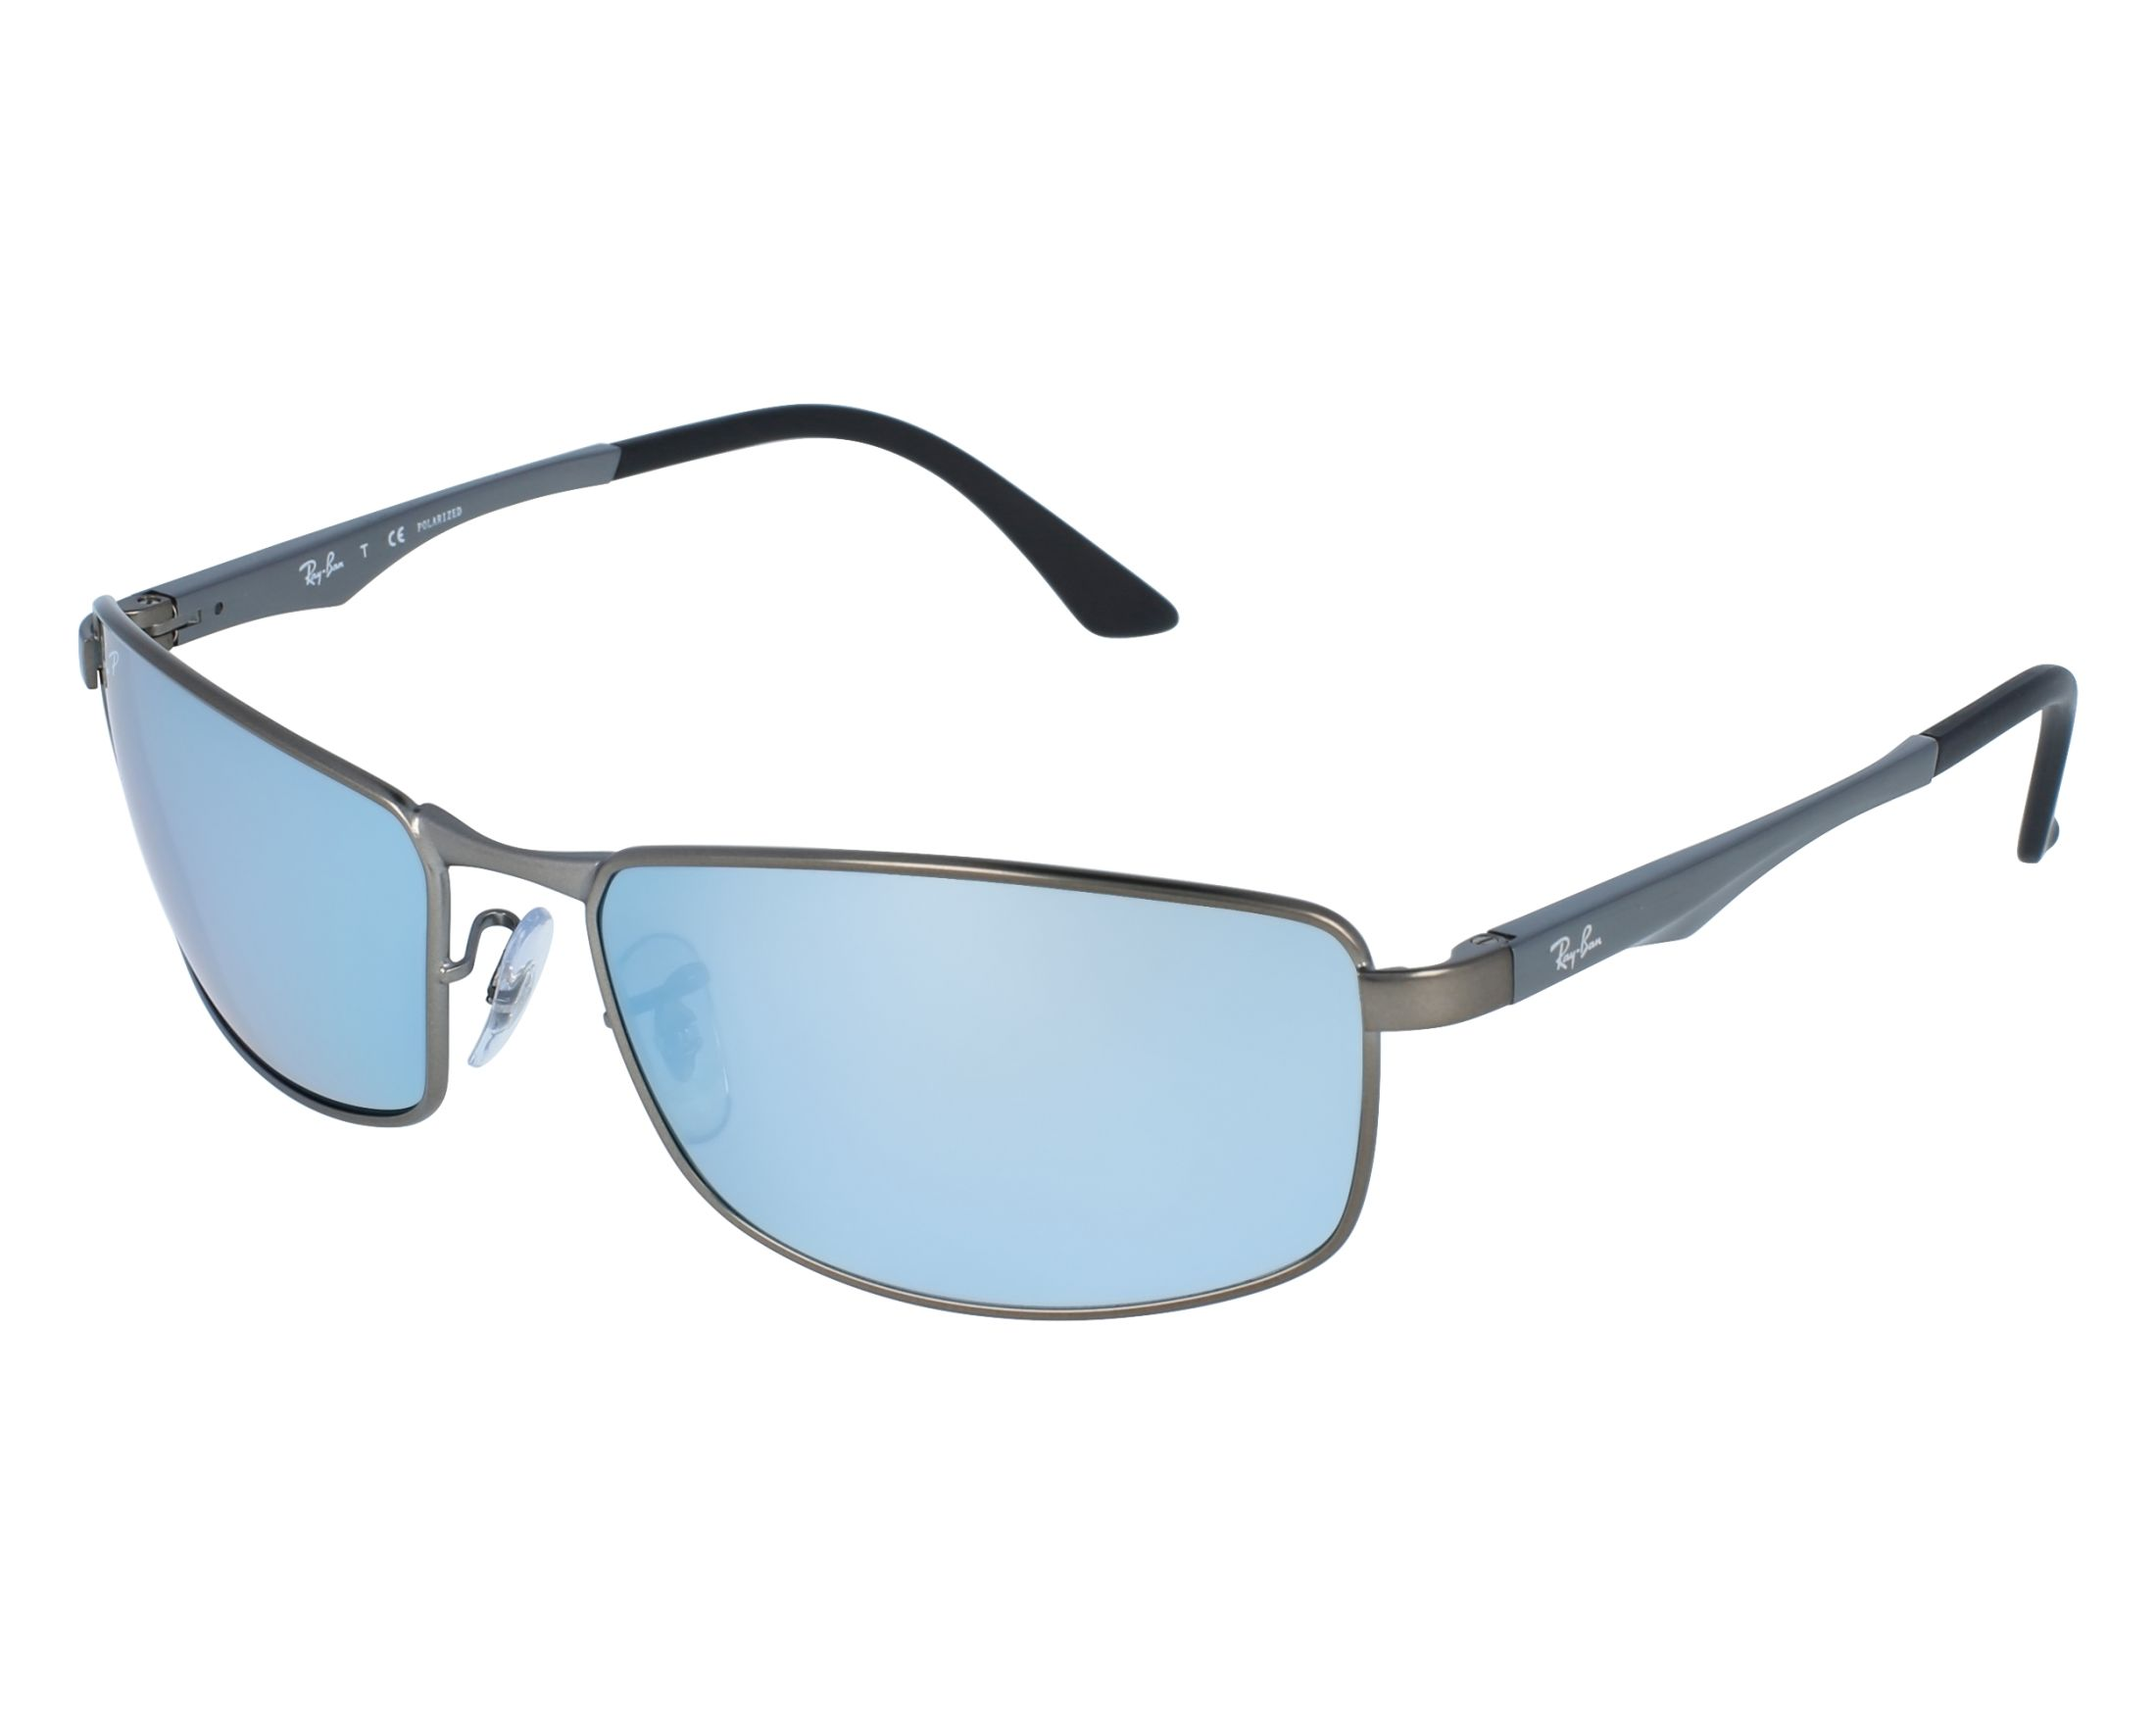 e76c84e823 thumbnail Sunglasses Ray-Ban RB-3498 029 Y4 - Grey front view